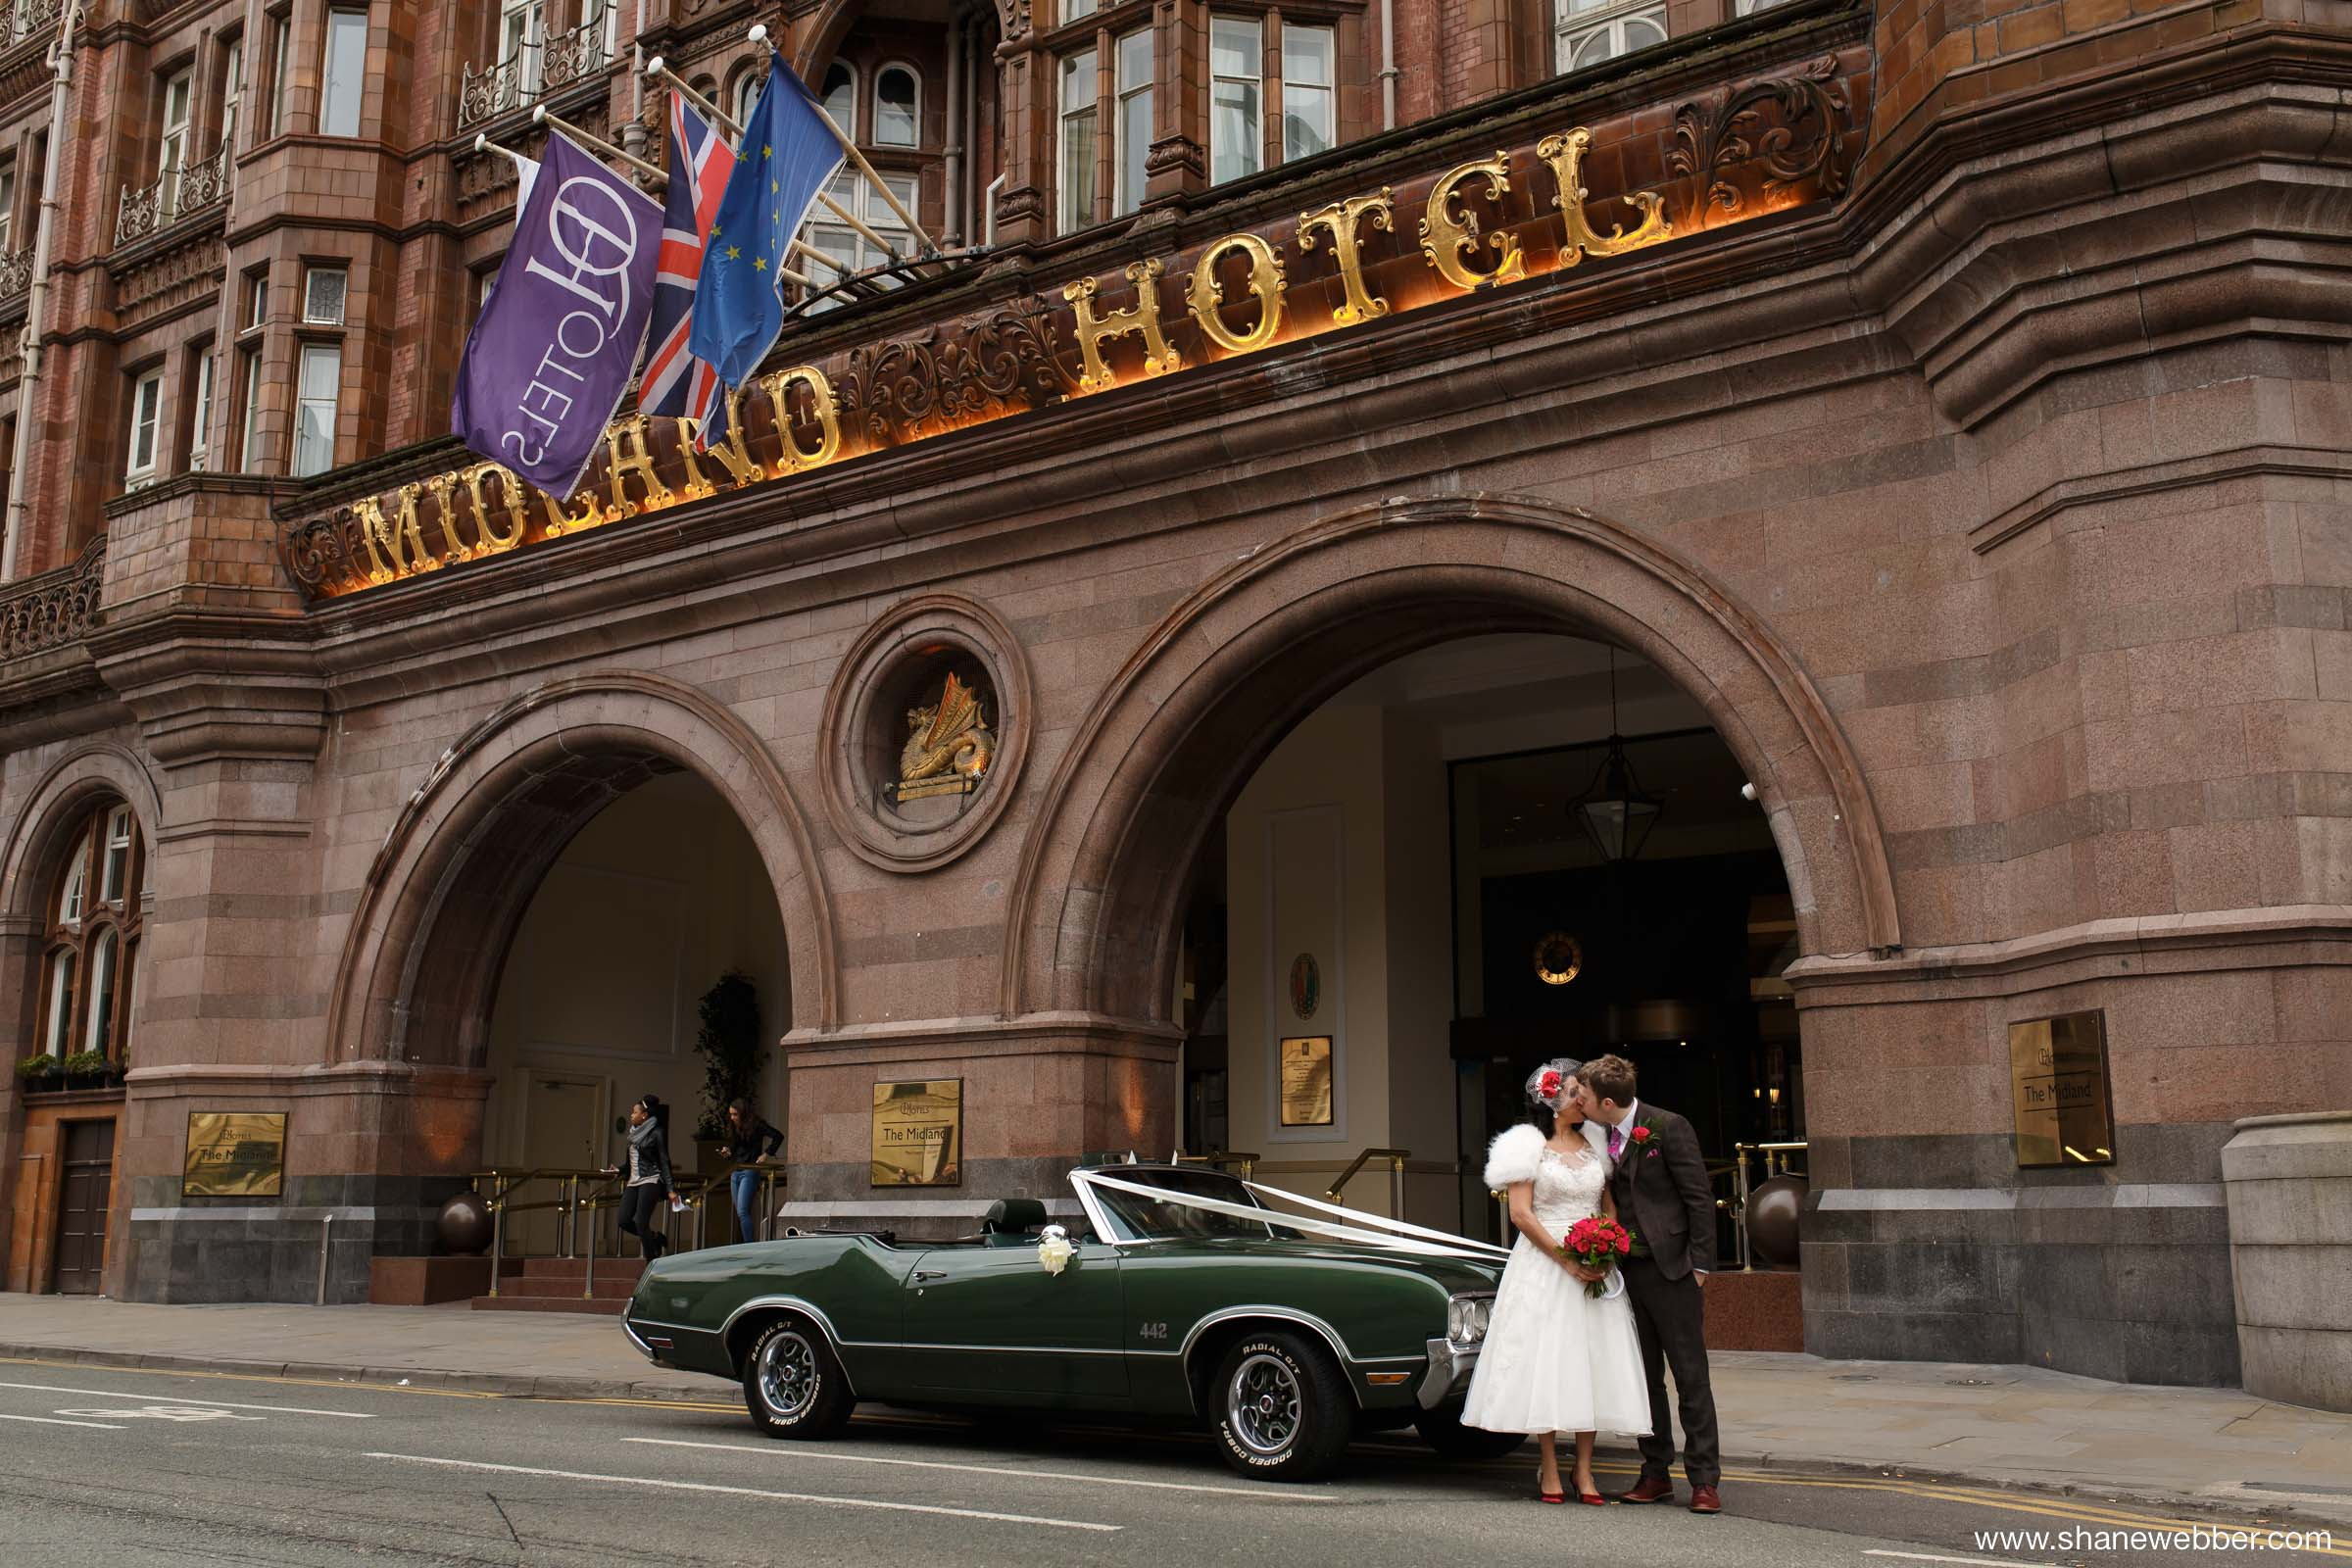 The Midland Manchester weddings